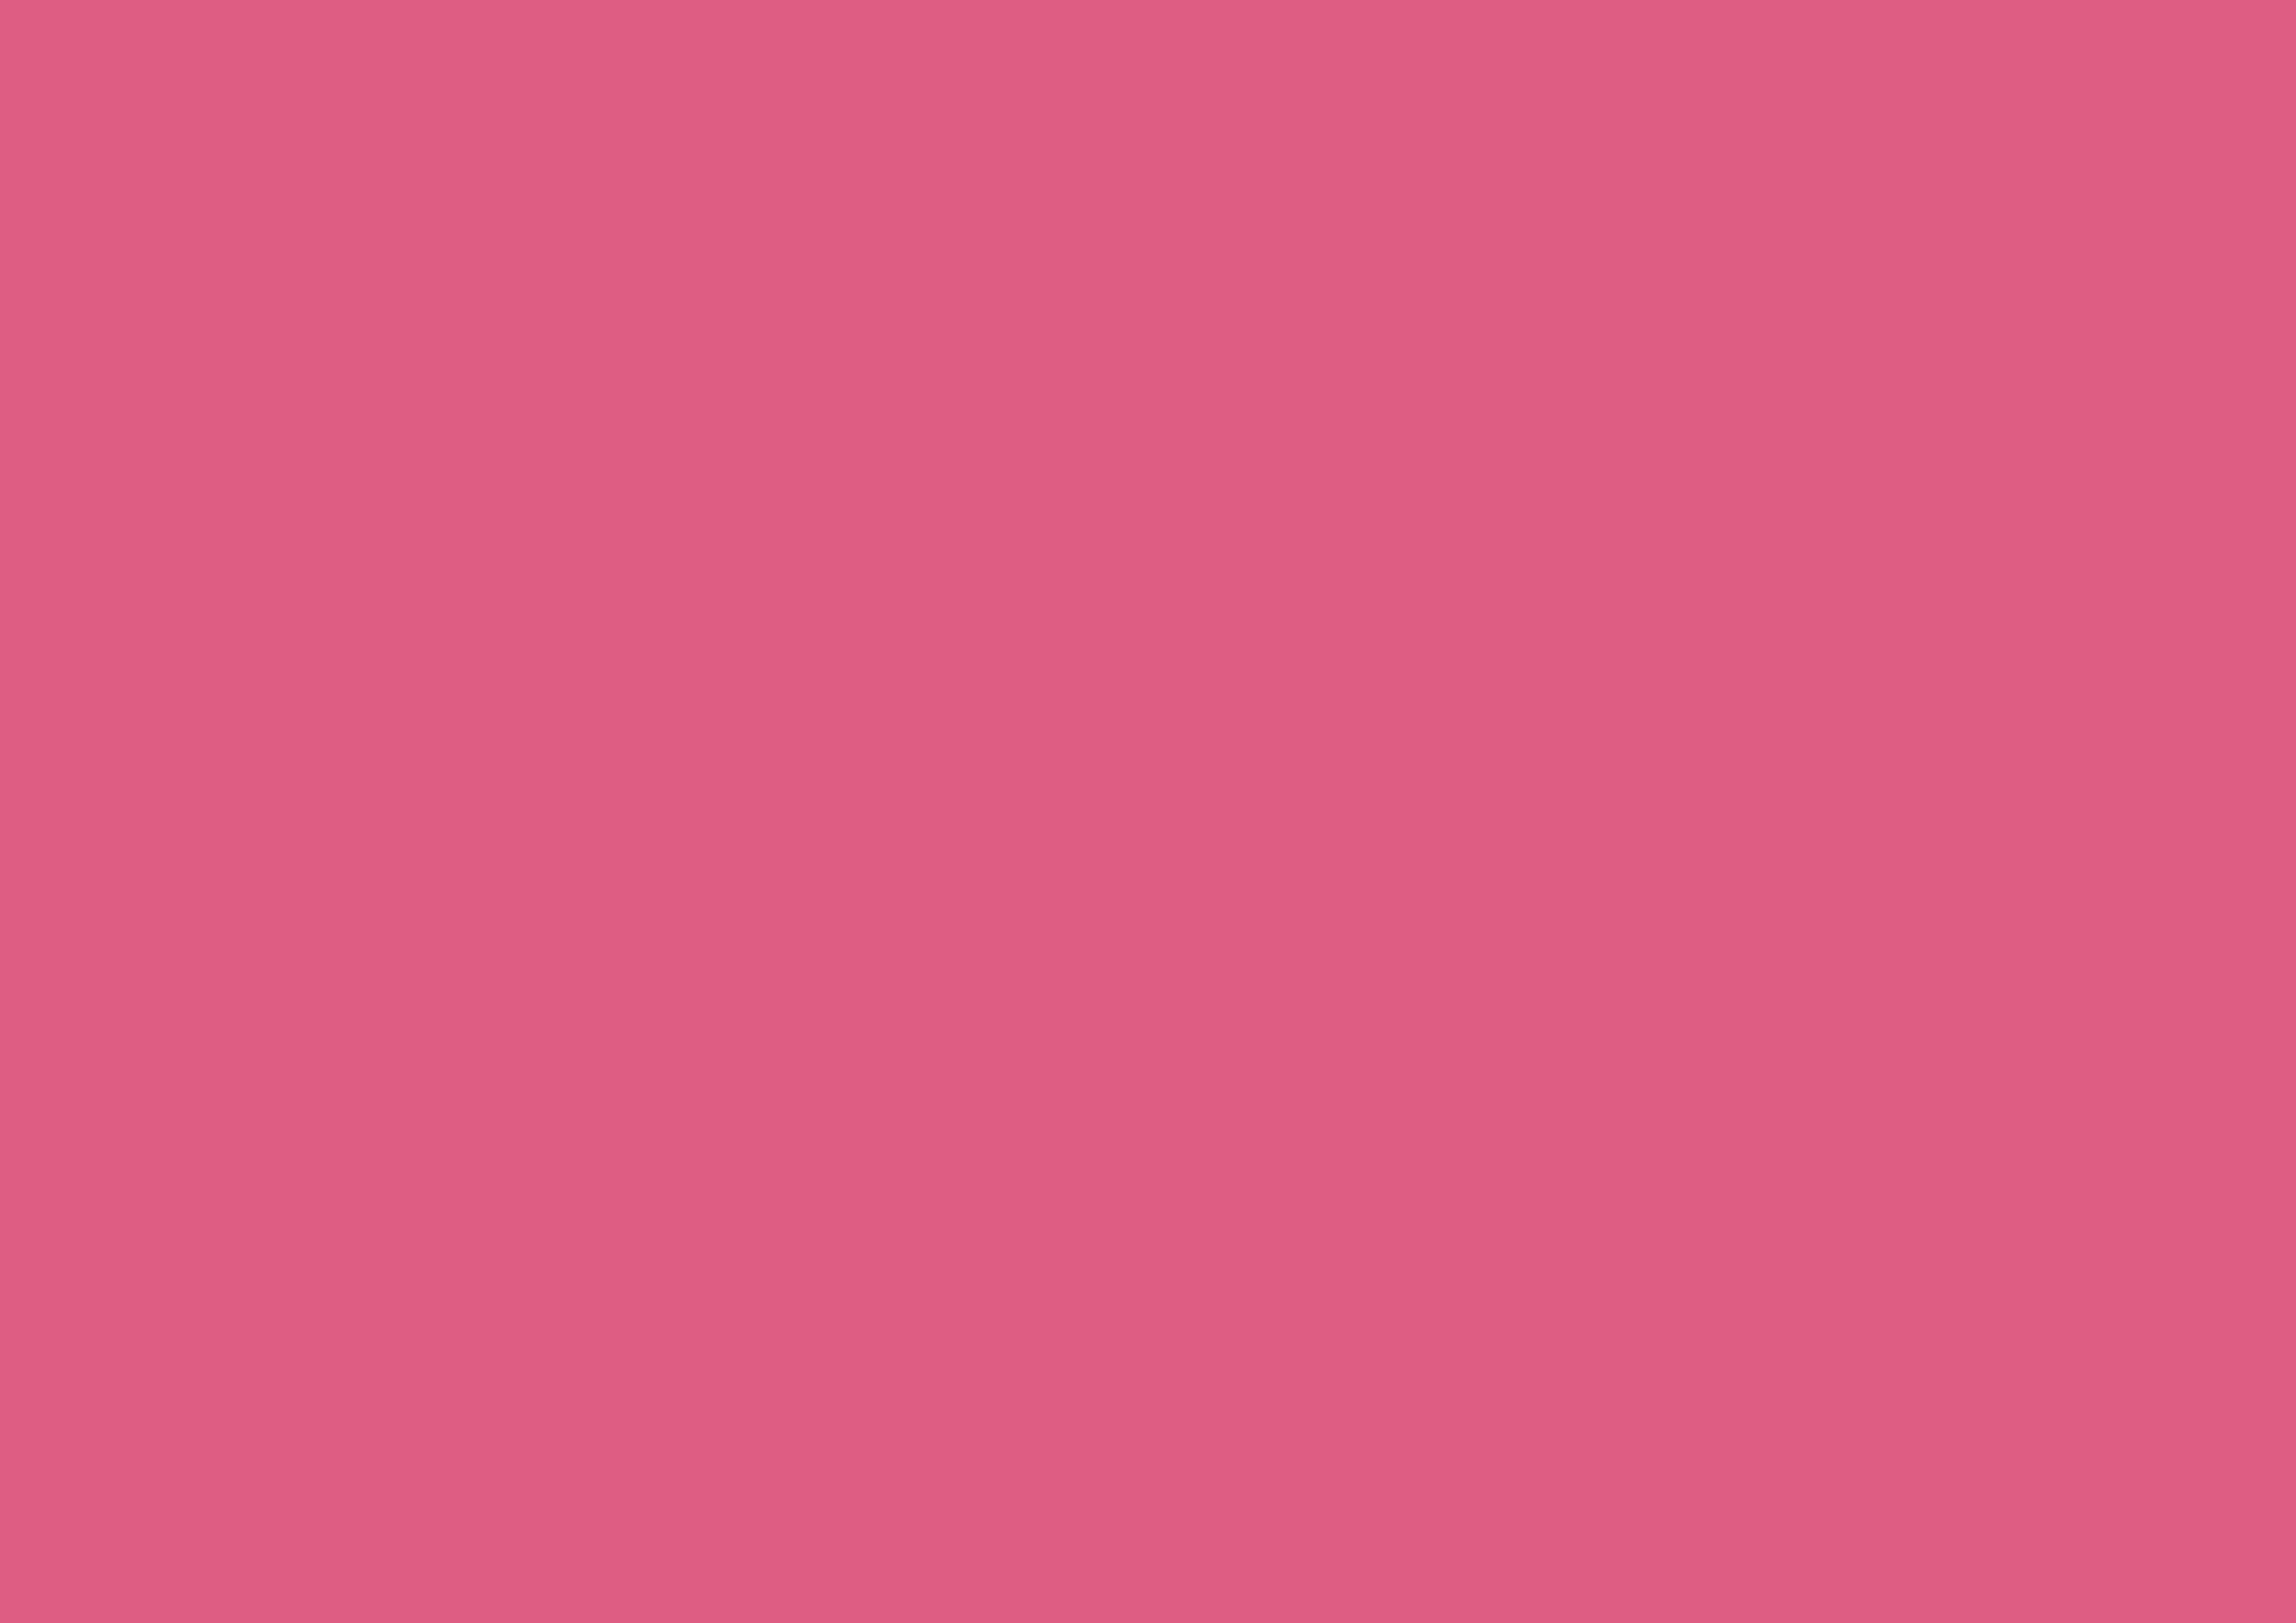 3508x2480 Blush Solid Color Background